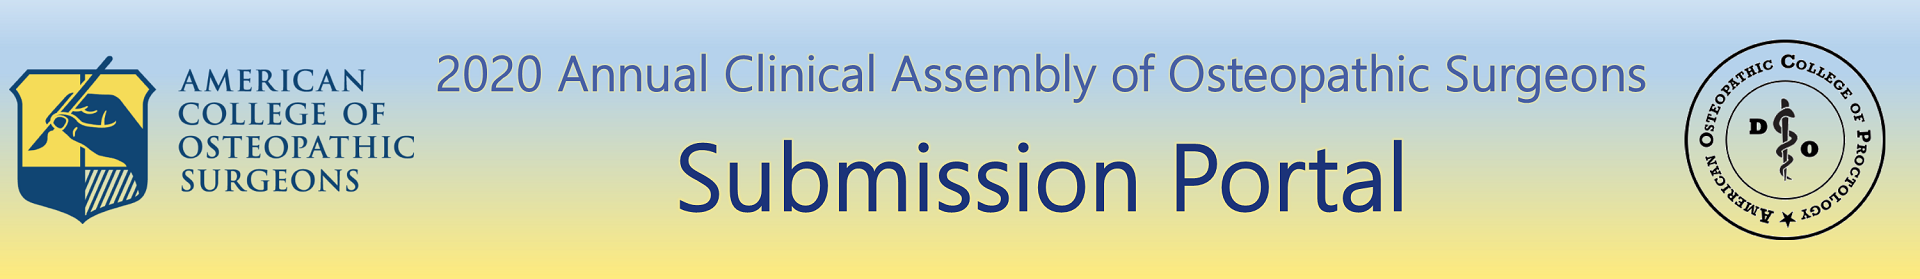 2020 Annual Clinical Assembly of Osteopathic Surgeons (ACA)  Event Banner